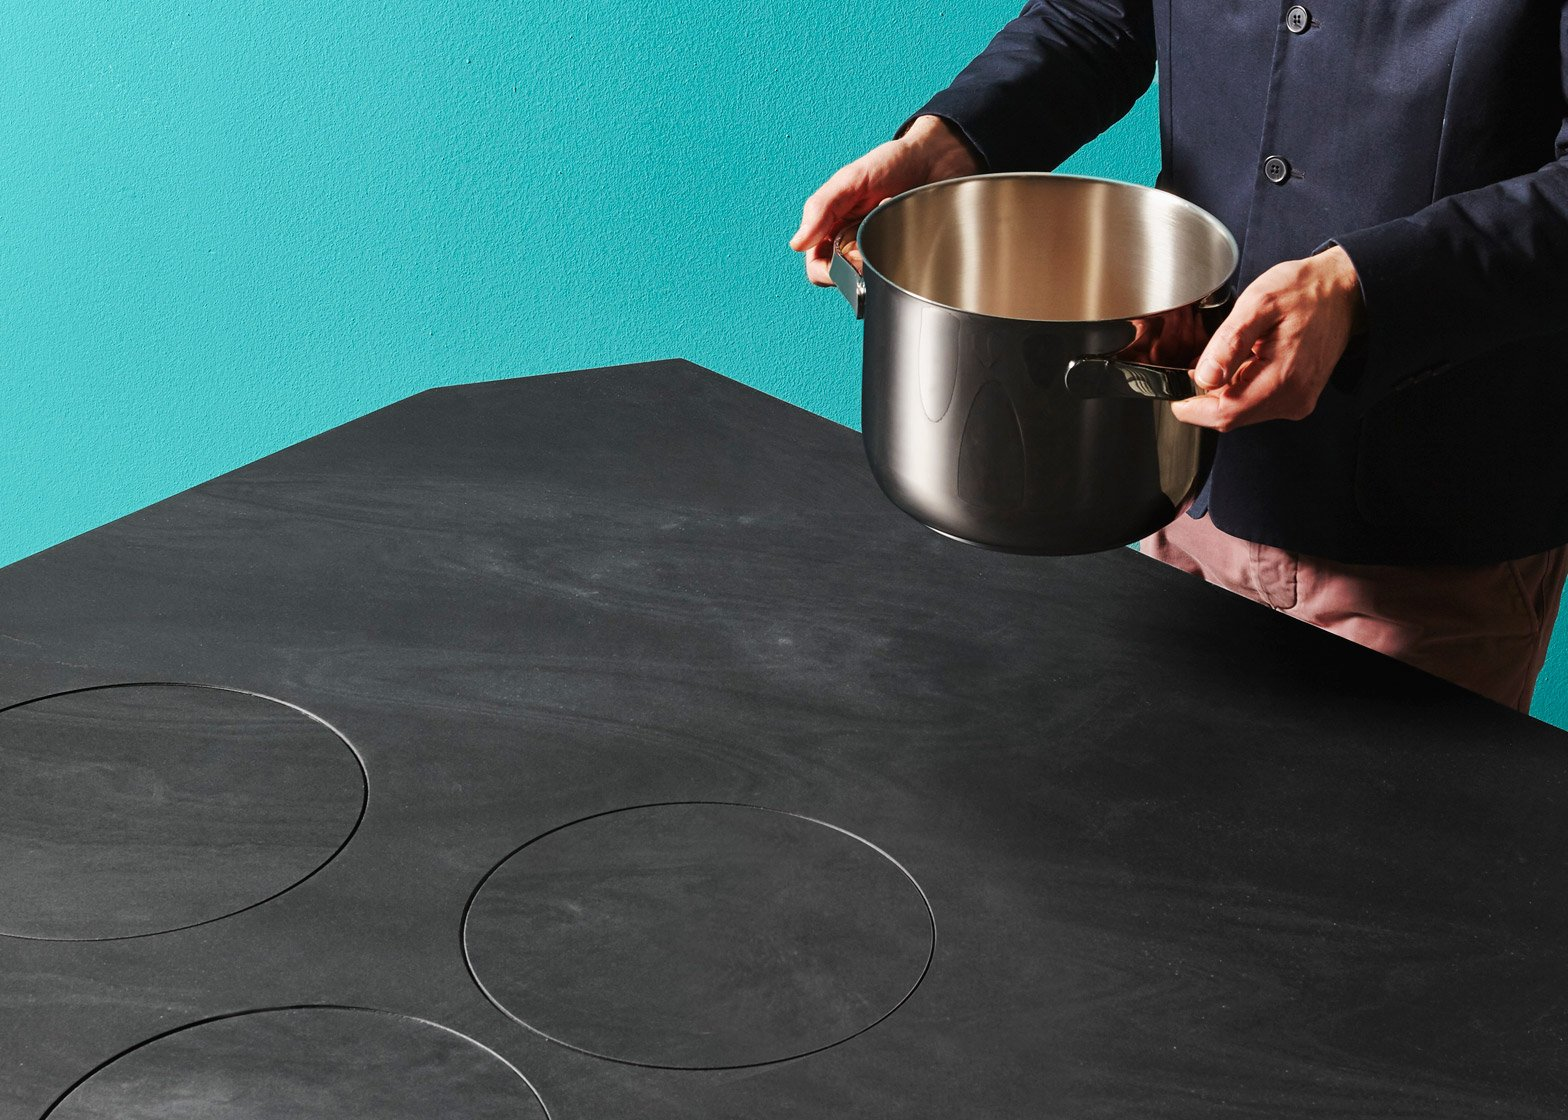 Tulèr Kitchen by Tipic for Offmat/Marmo Arredo